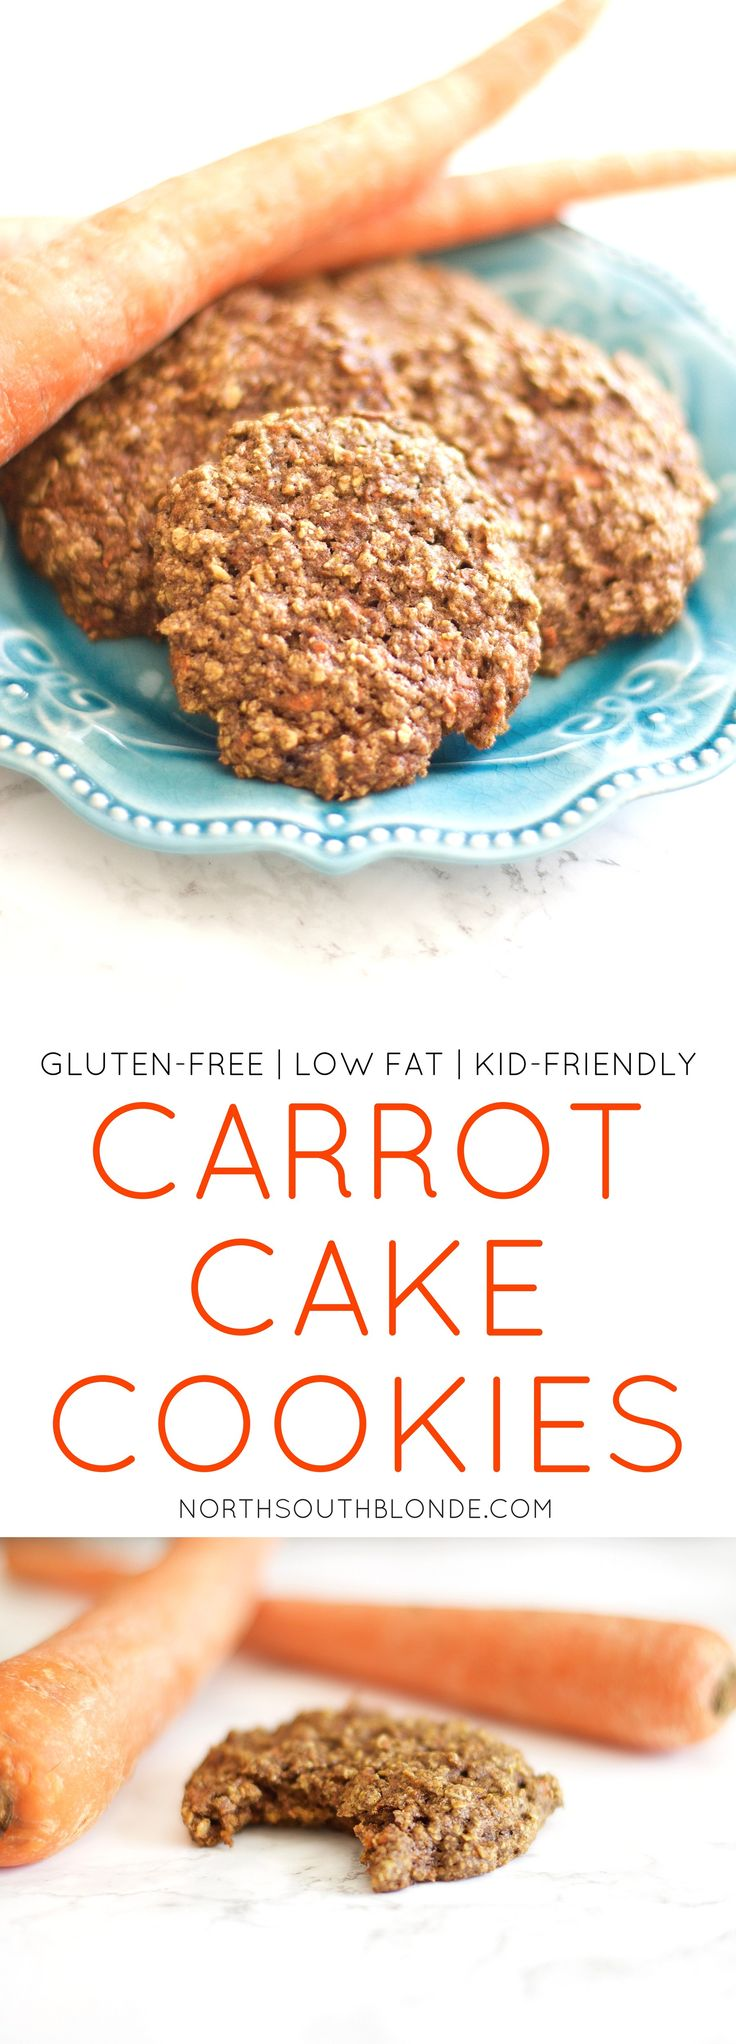 A great way to get the kids to eat their vegetables. These cookies are nutritious and delicious! Super easy to make, high in fibre, low in fat, low carb, and absolutely deadly! Perfect, mouth-watering cookies in under 20 mins! Easy Recipes | Breakfast | Snacks | Food | Oatmeal | Veggies | Easy Fast & Quick | Toddler Food | Kid-Friendly | Baby Food | Weight Loss | Nutrition | Dessert | Treats | Spring | Easter Ideas | Baking |